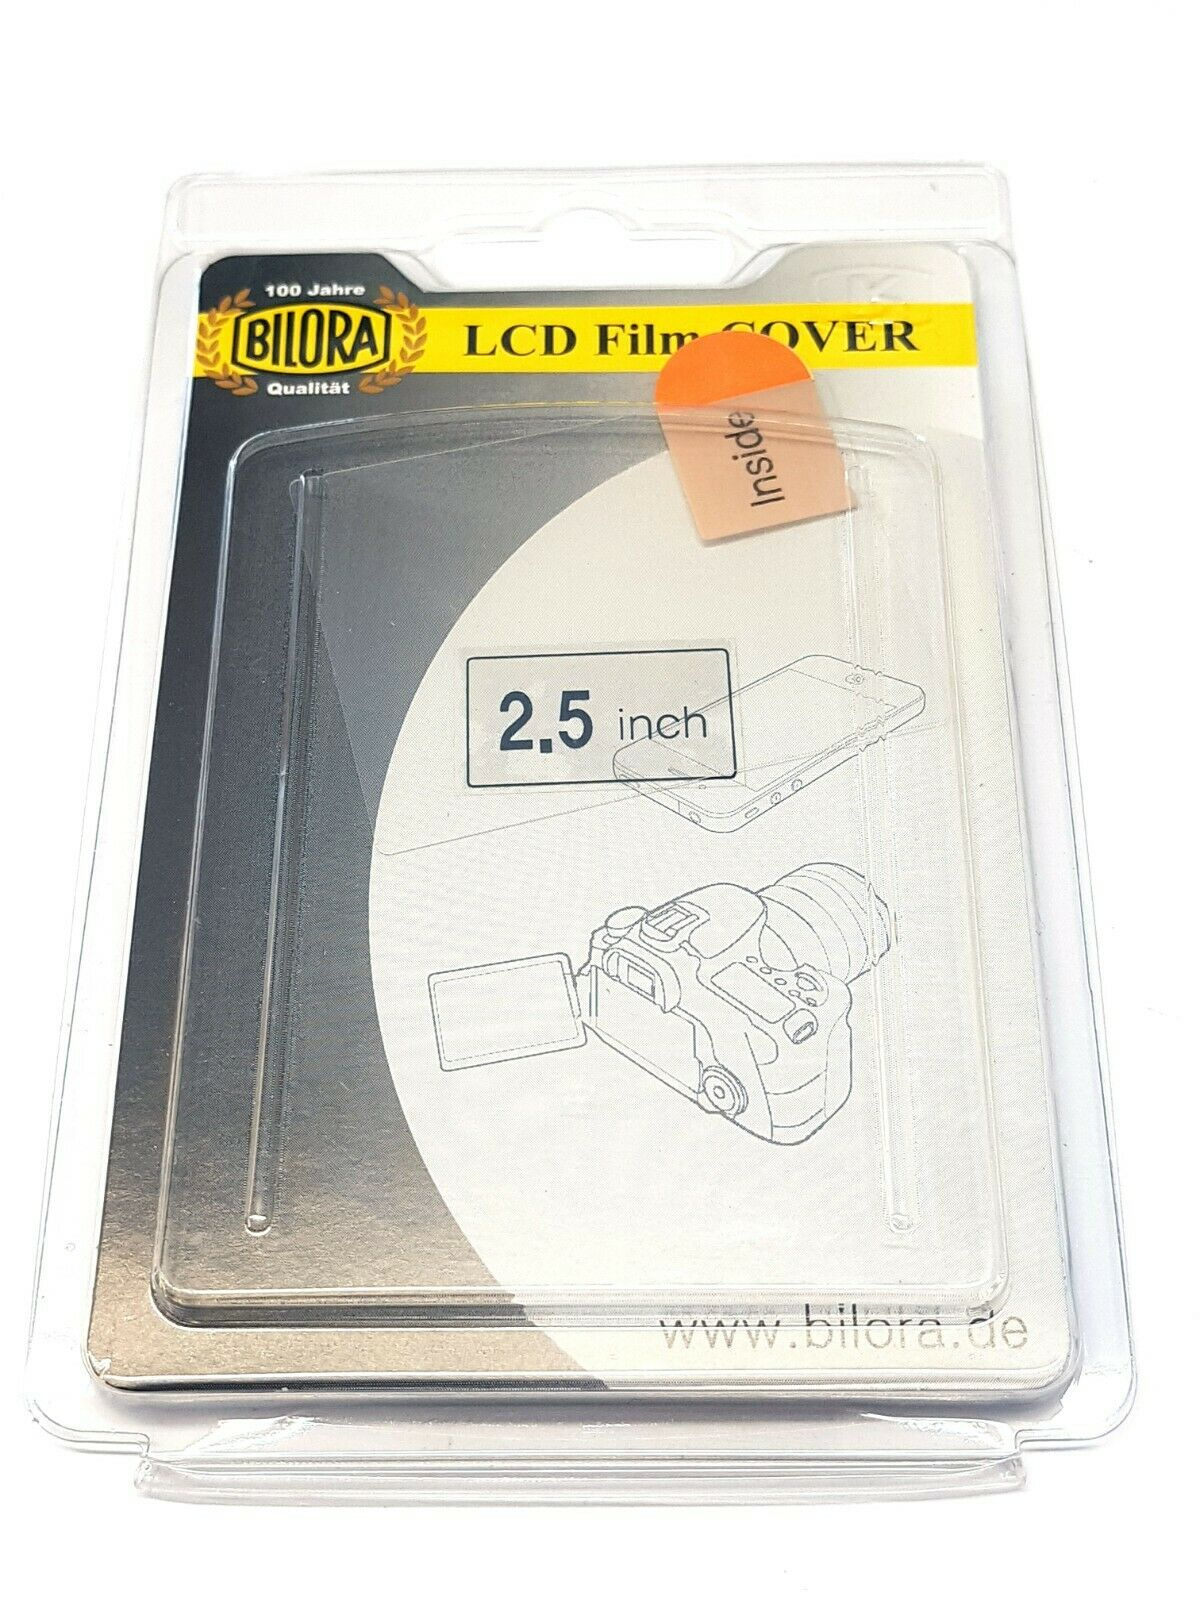 1 X BILORA LCD Film Cover Protective for Cameras With 2.5